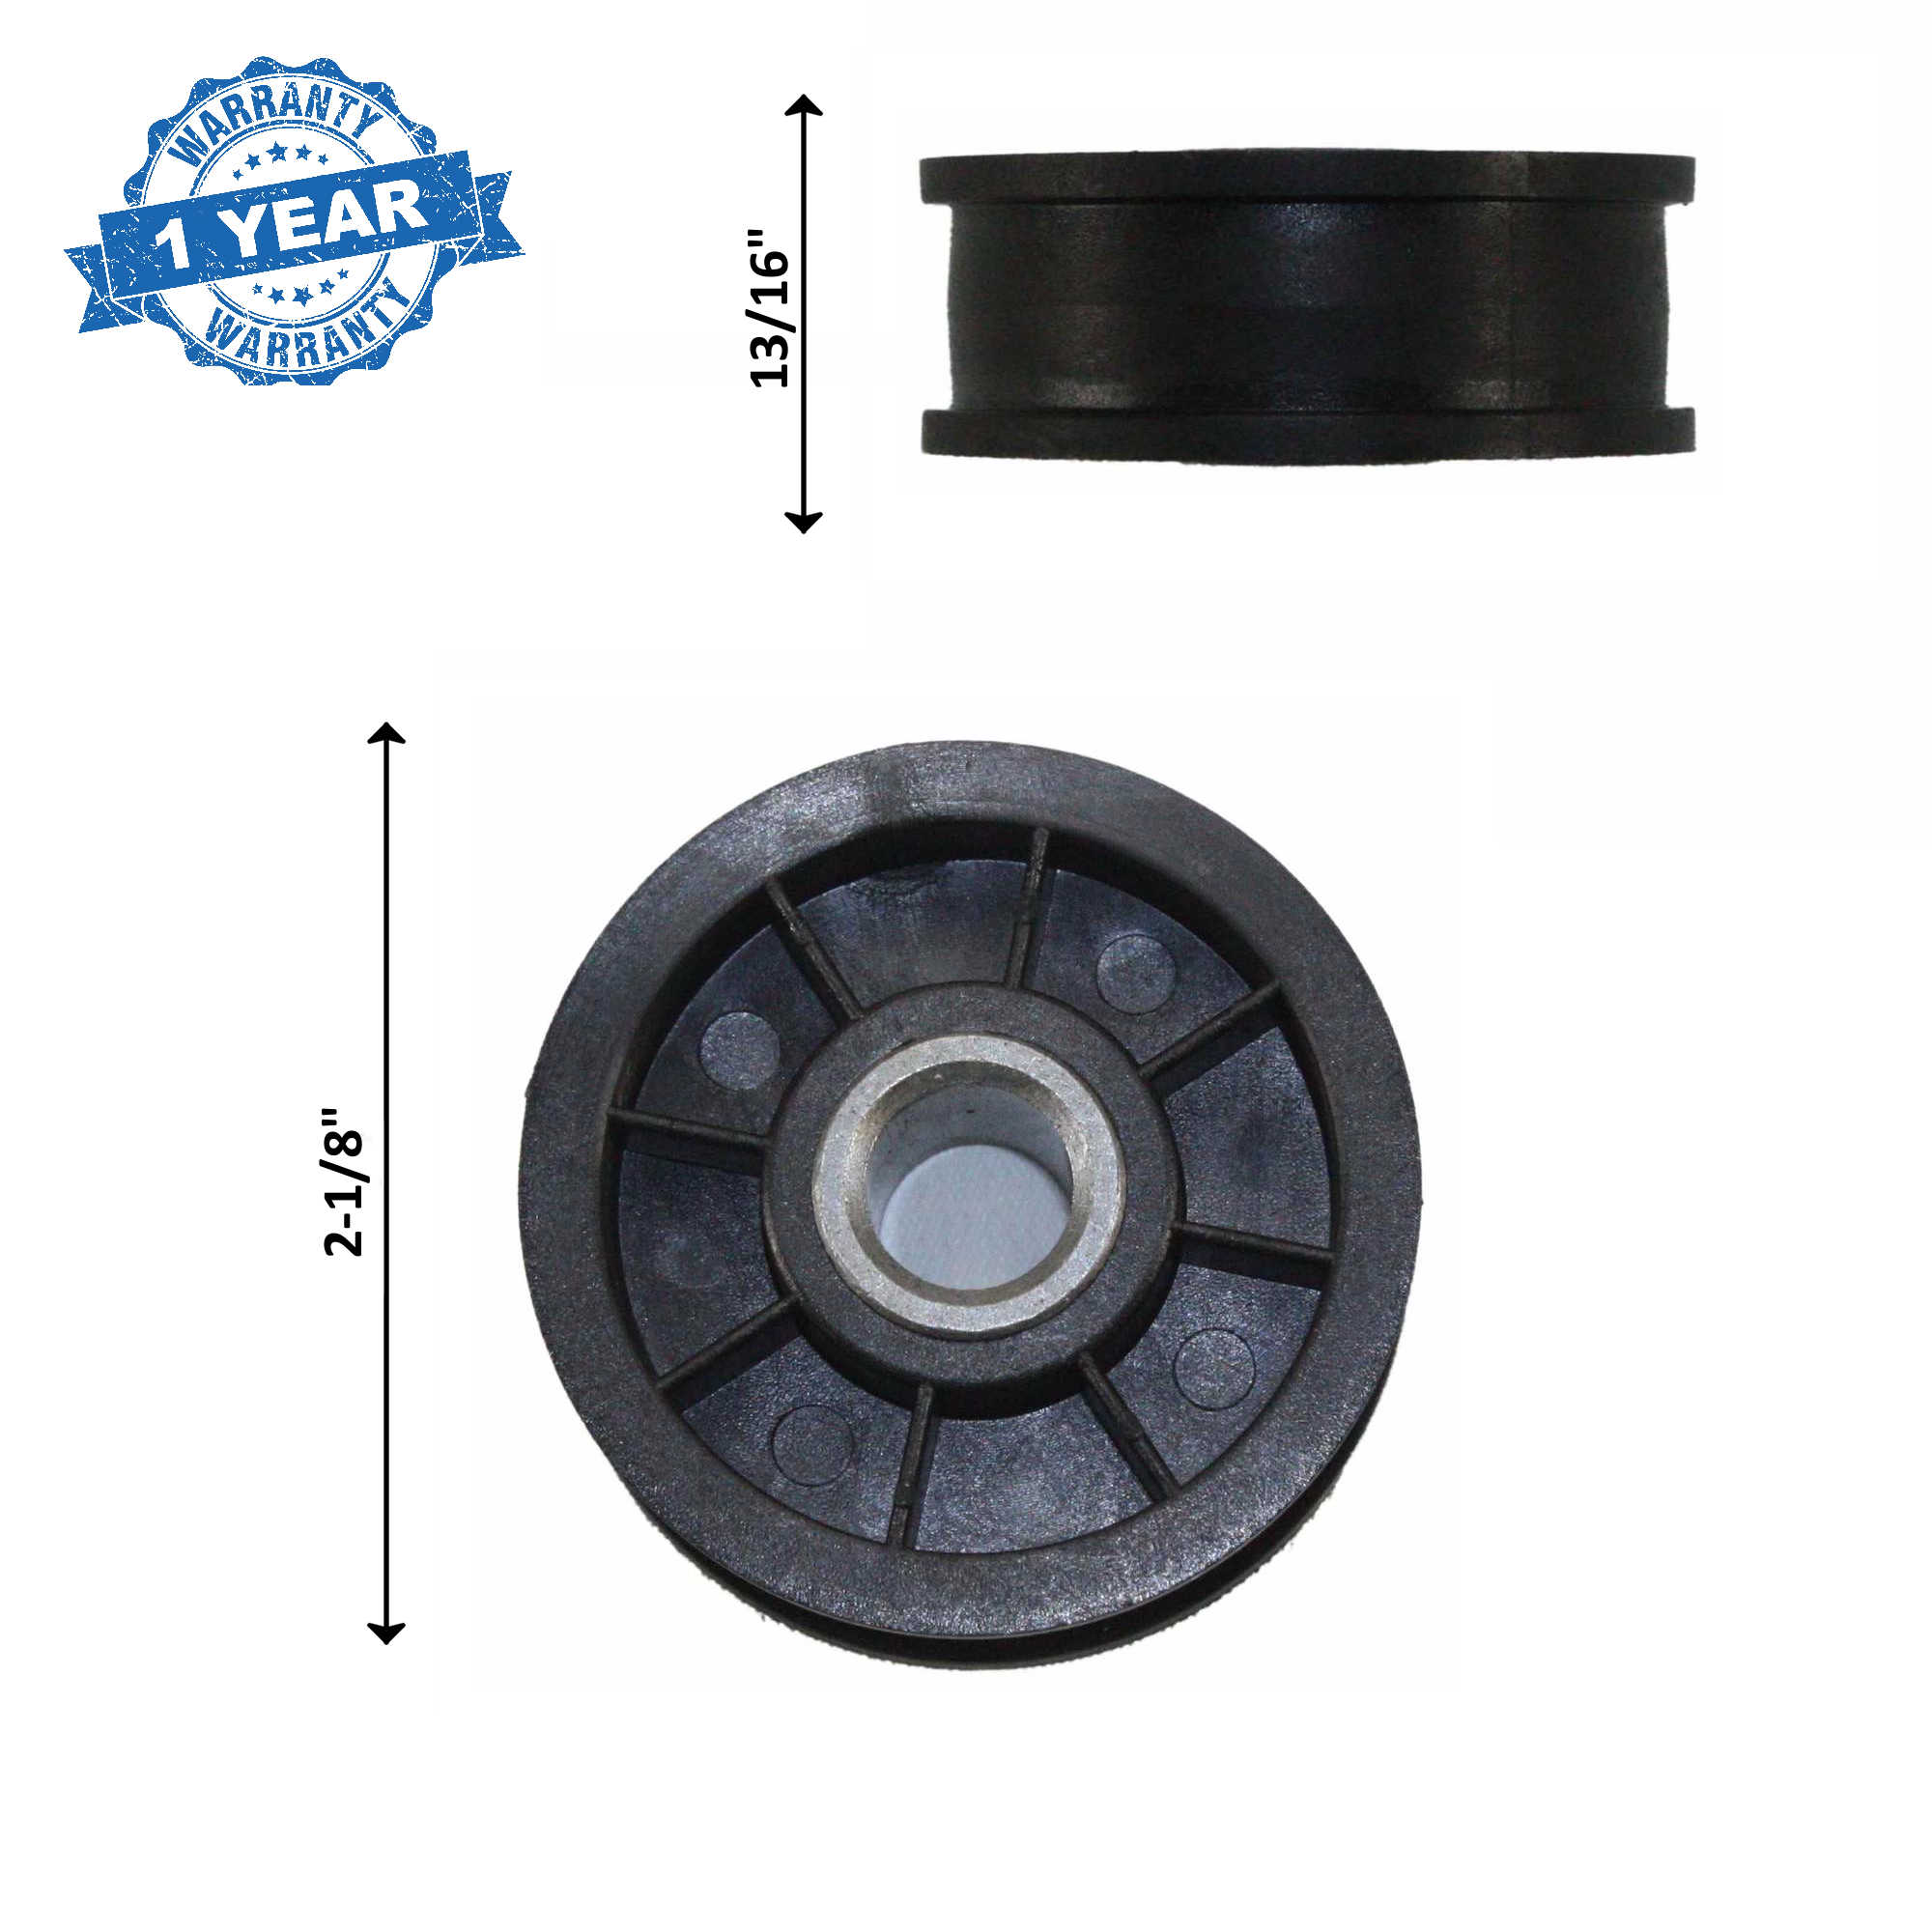 Supplying Demand Y54414 Dryer Idler Pulley 14218926, R0609504, 54414, AP6024203